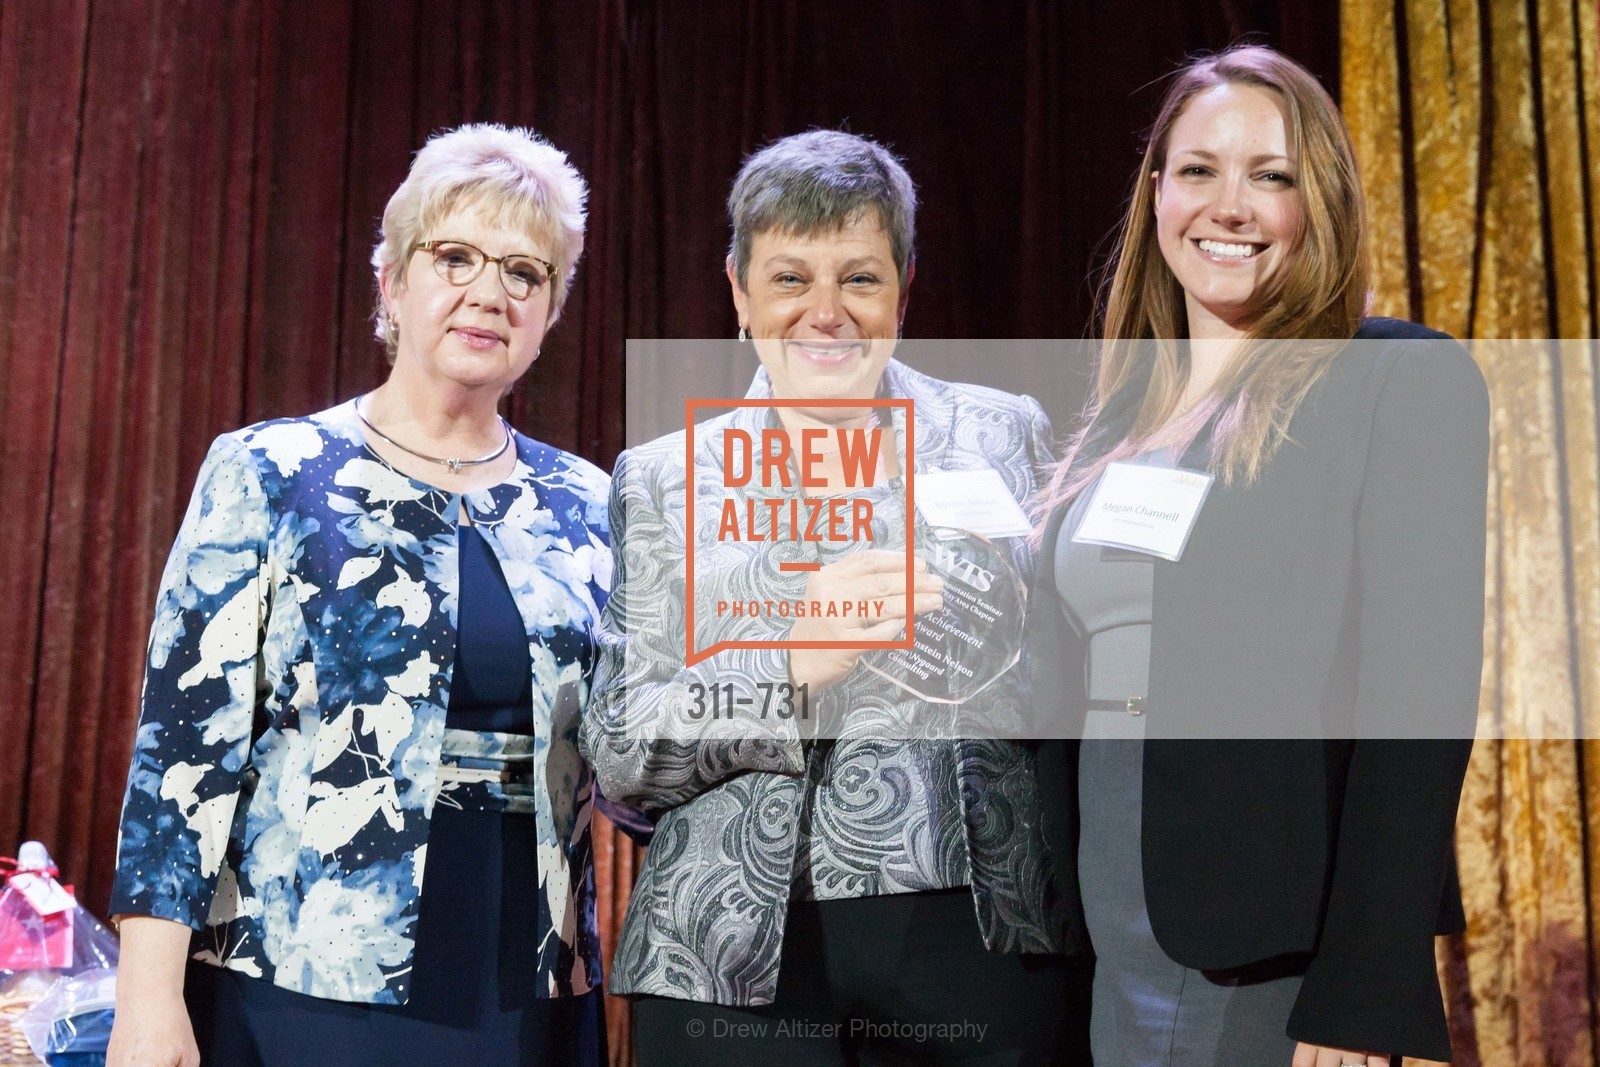 Darlene Gee, Bonnie Nelson, Megan Channell, WOMEN'S TRANSPORTATION SEMINAR SF Bay Area Chapter Annual Scholarship Awards, US, May 15th, 2015,Drew Altizer, Drew Altizer Photography, full-service event agency, private events, San Francisco photographer, photographer California